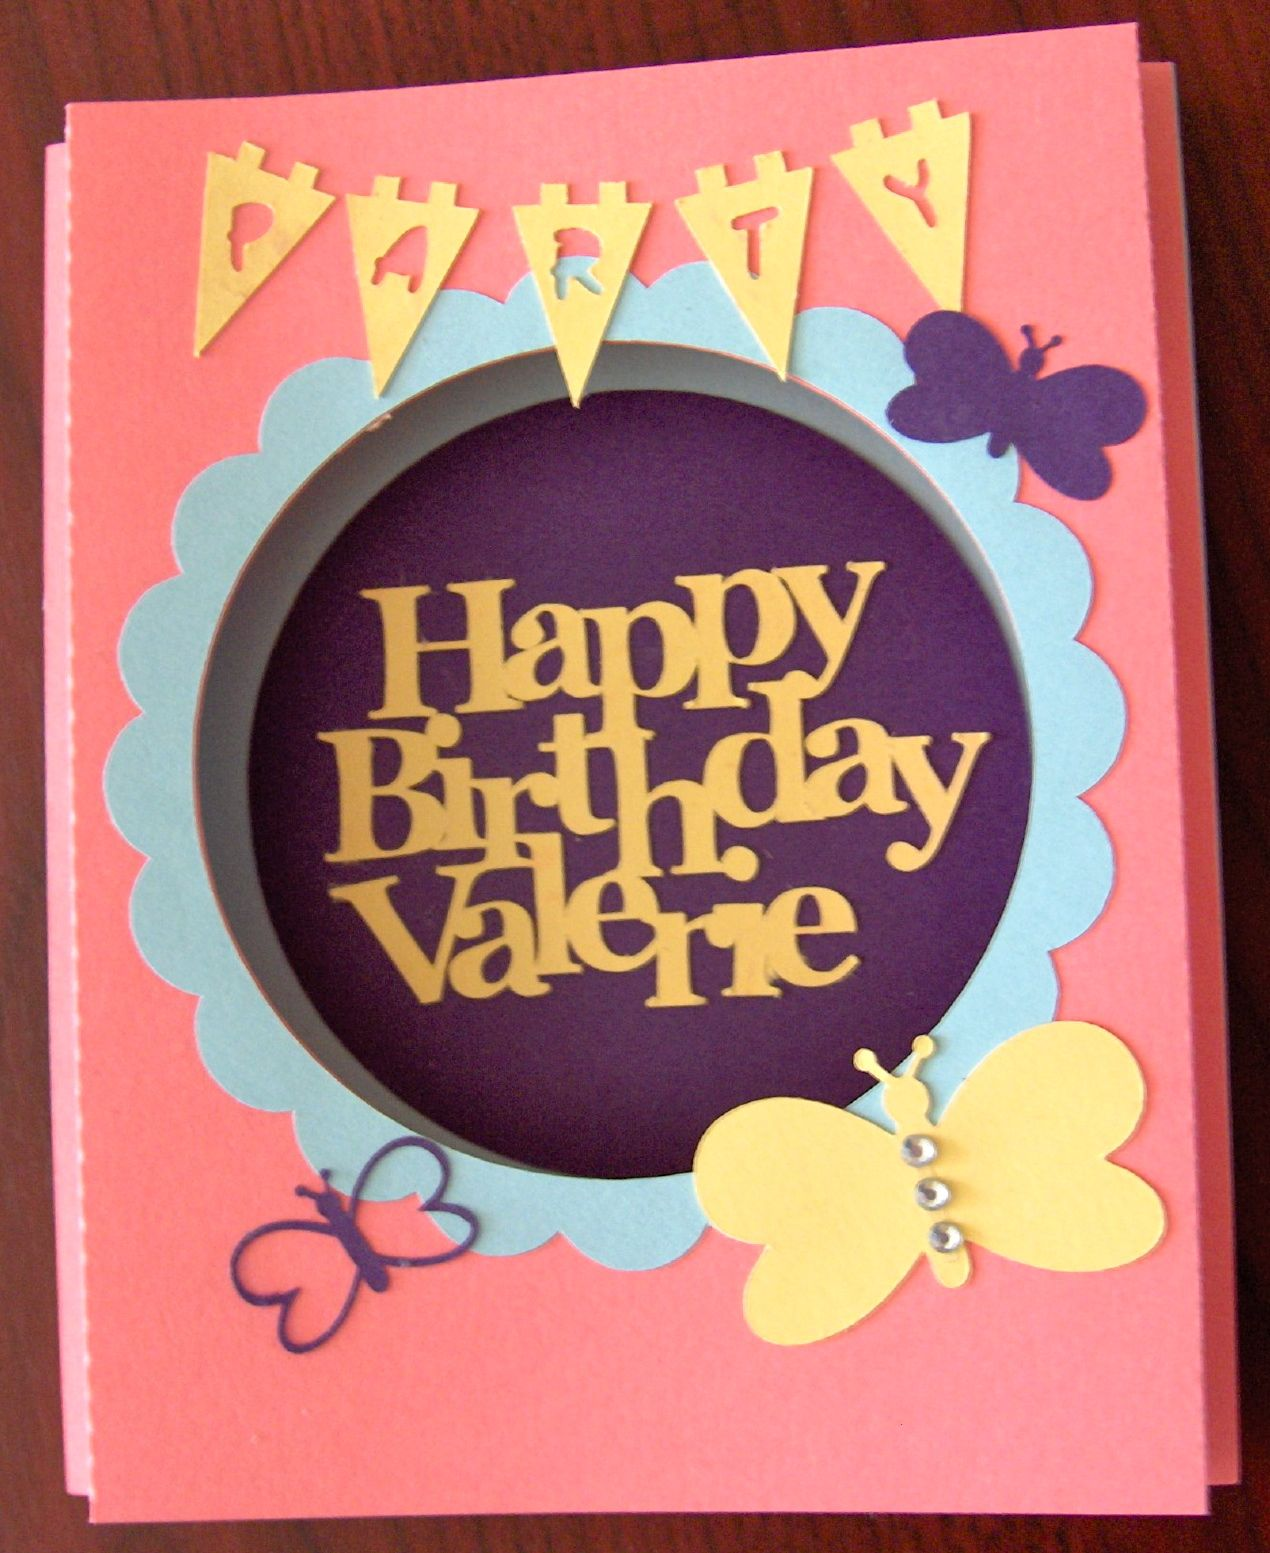 Rhapsody of cacophony little sister birthday cards little sister birthday cards bookmarktalkfo Gallery